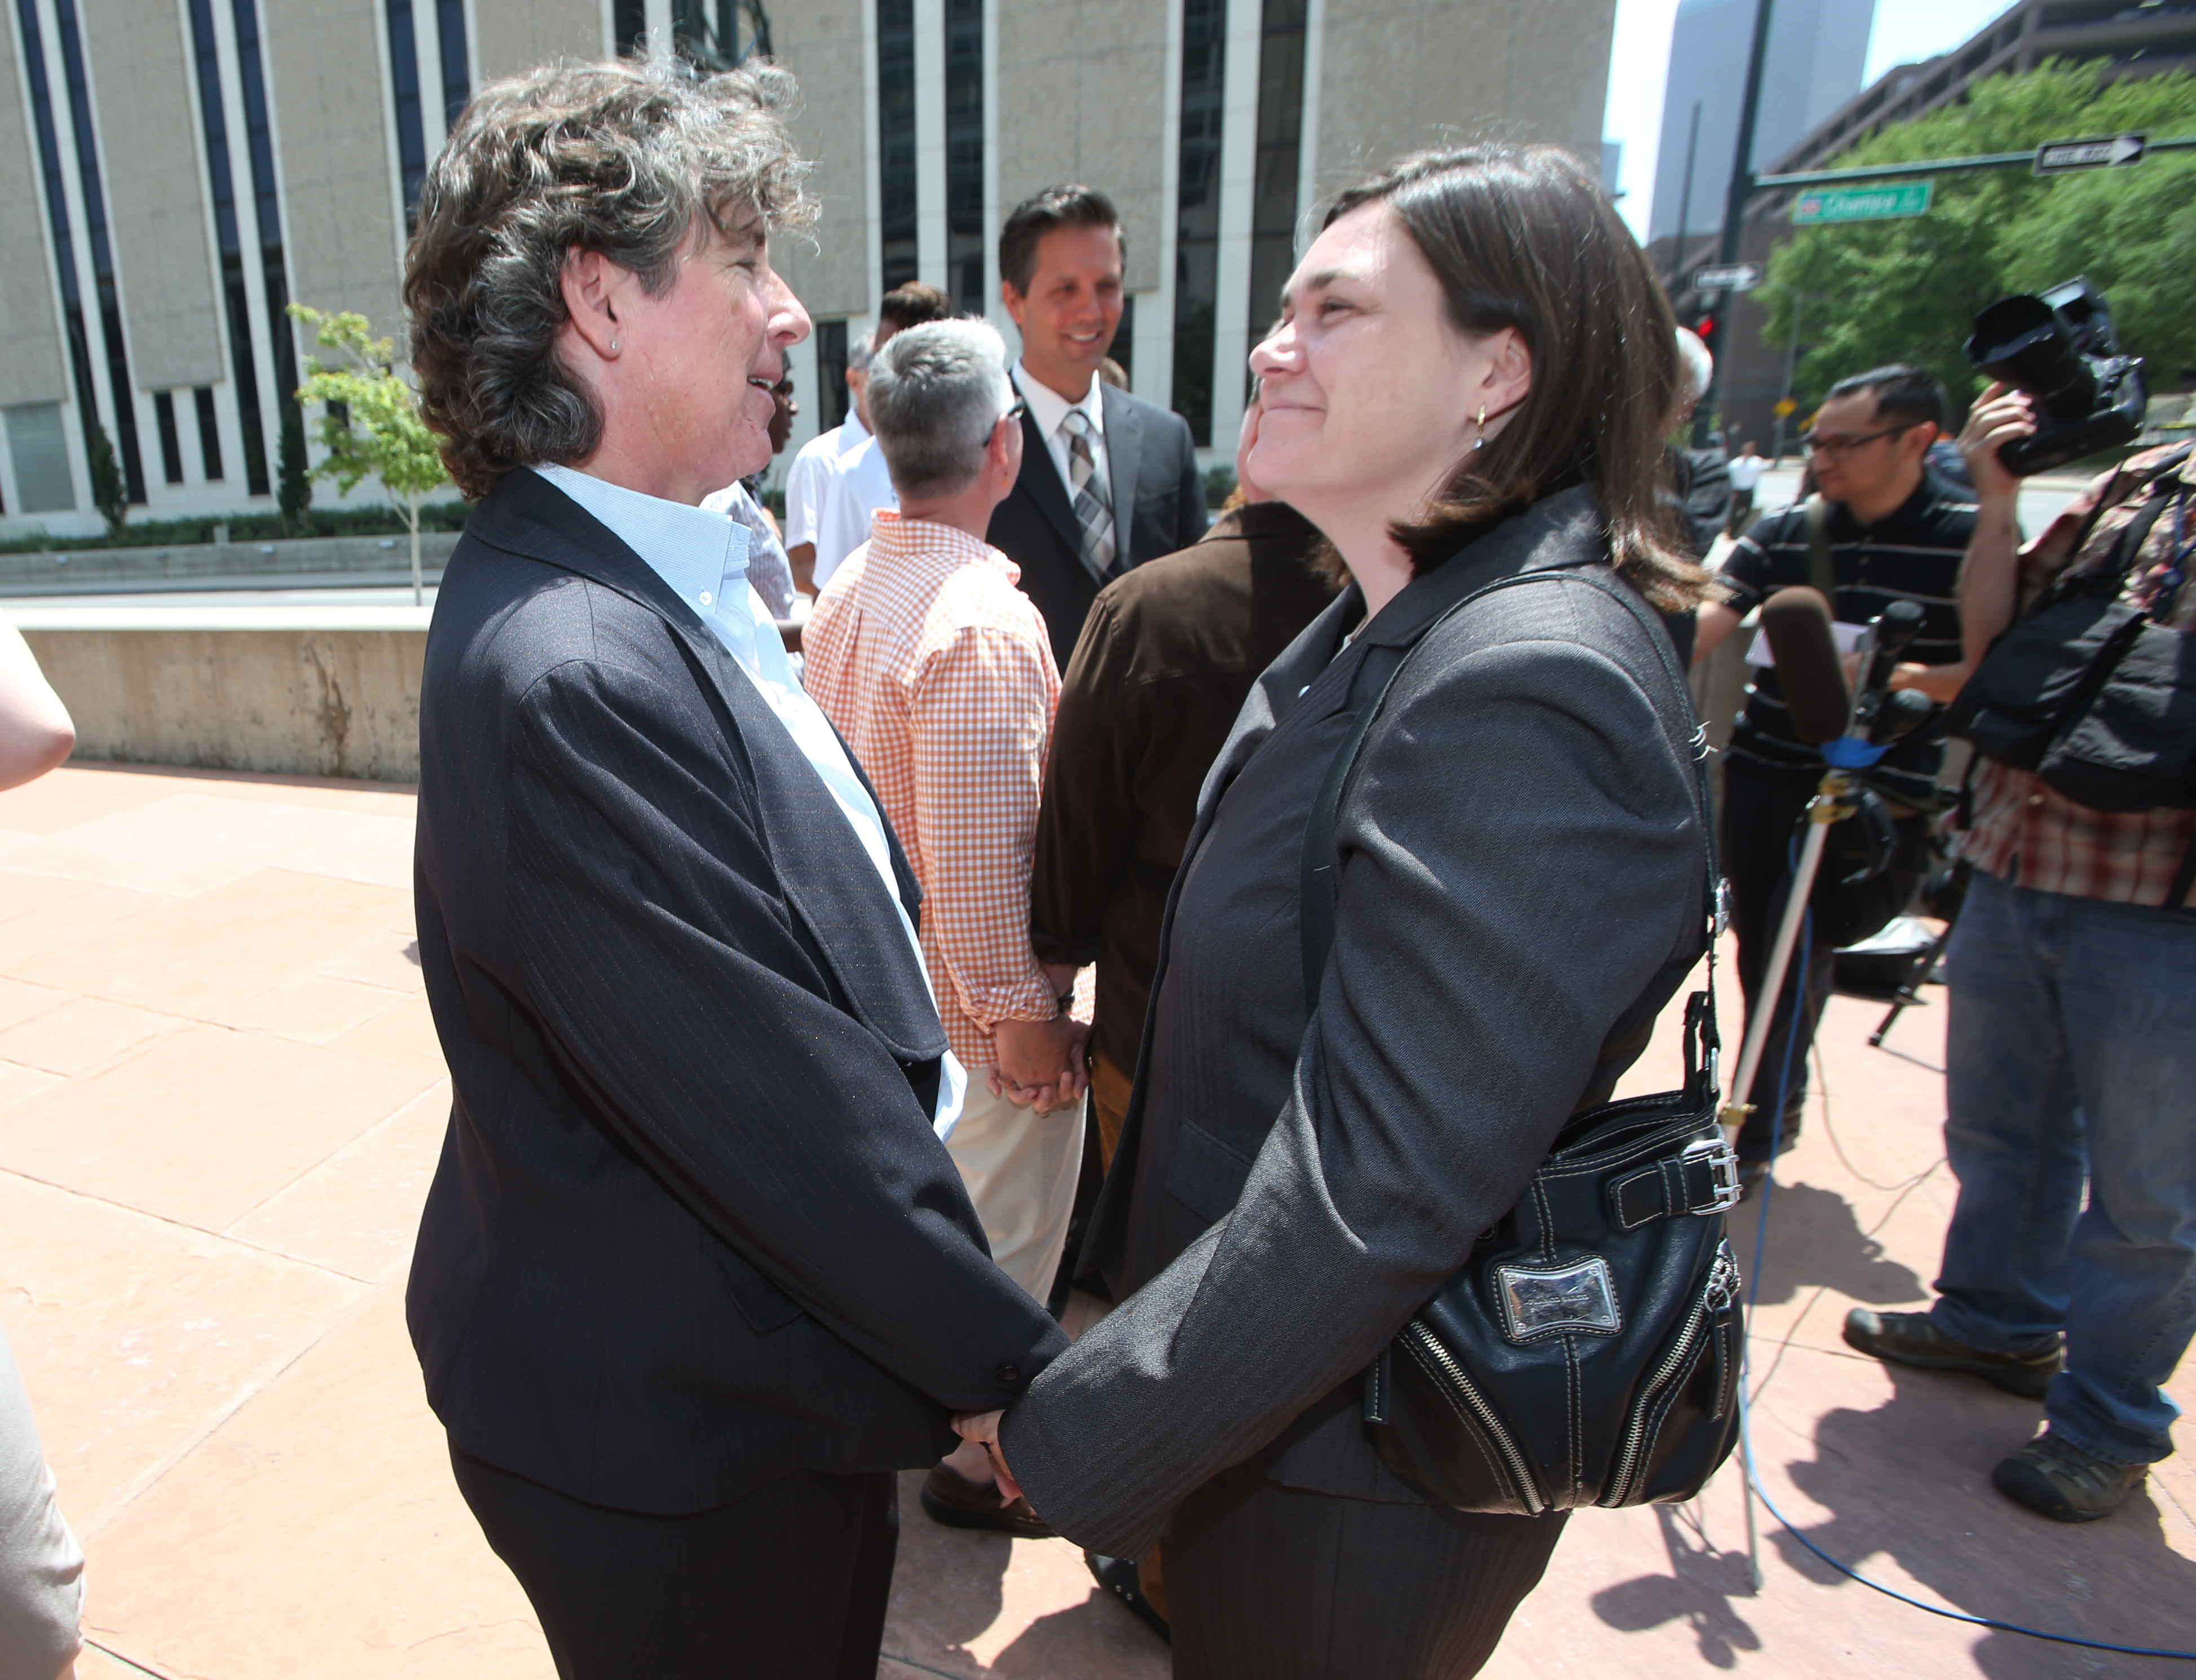 Judge strikes down Colorado gay marriage ban